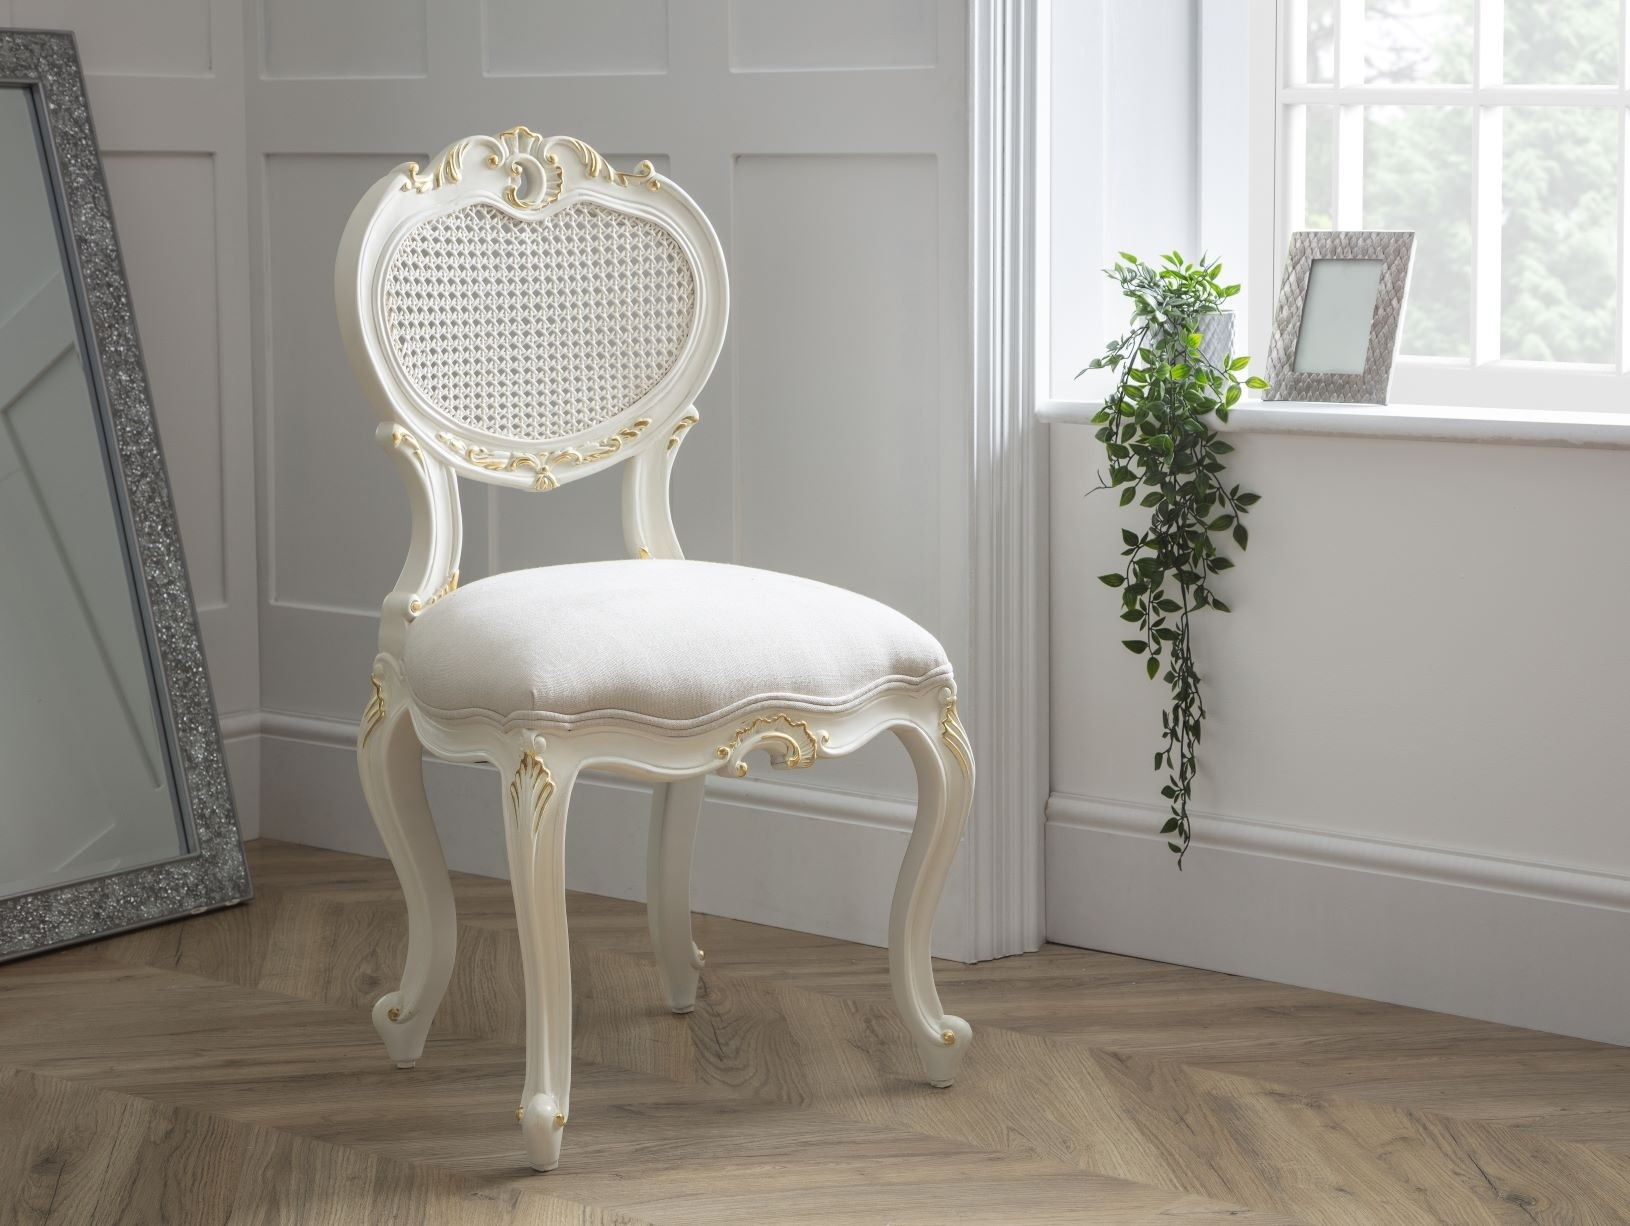 Provencale Antique White French Style Bedroom Chair French Bedroom Furniture French Chairs